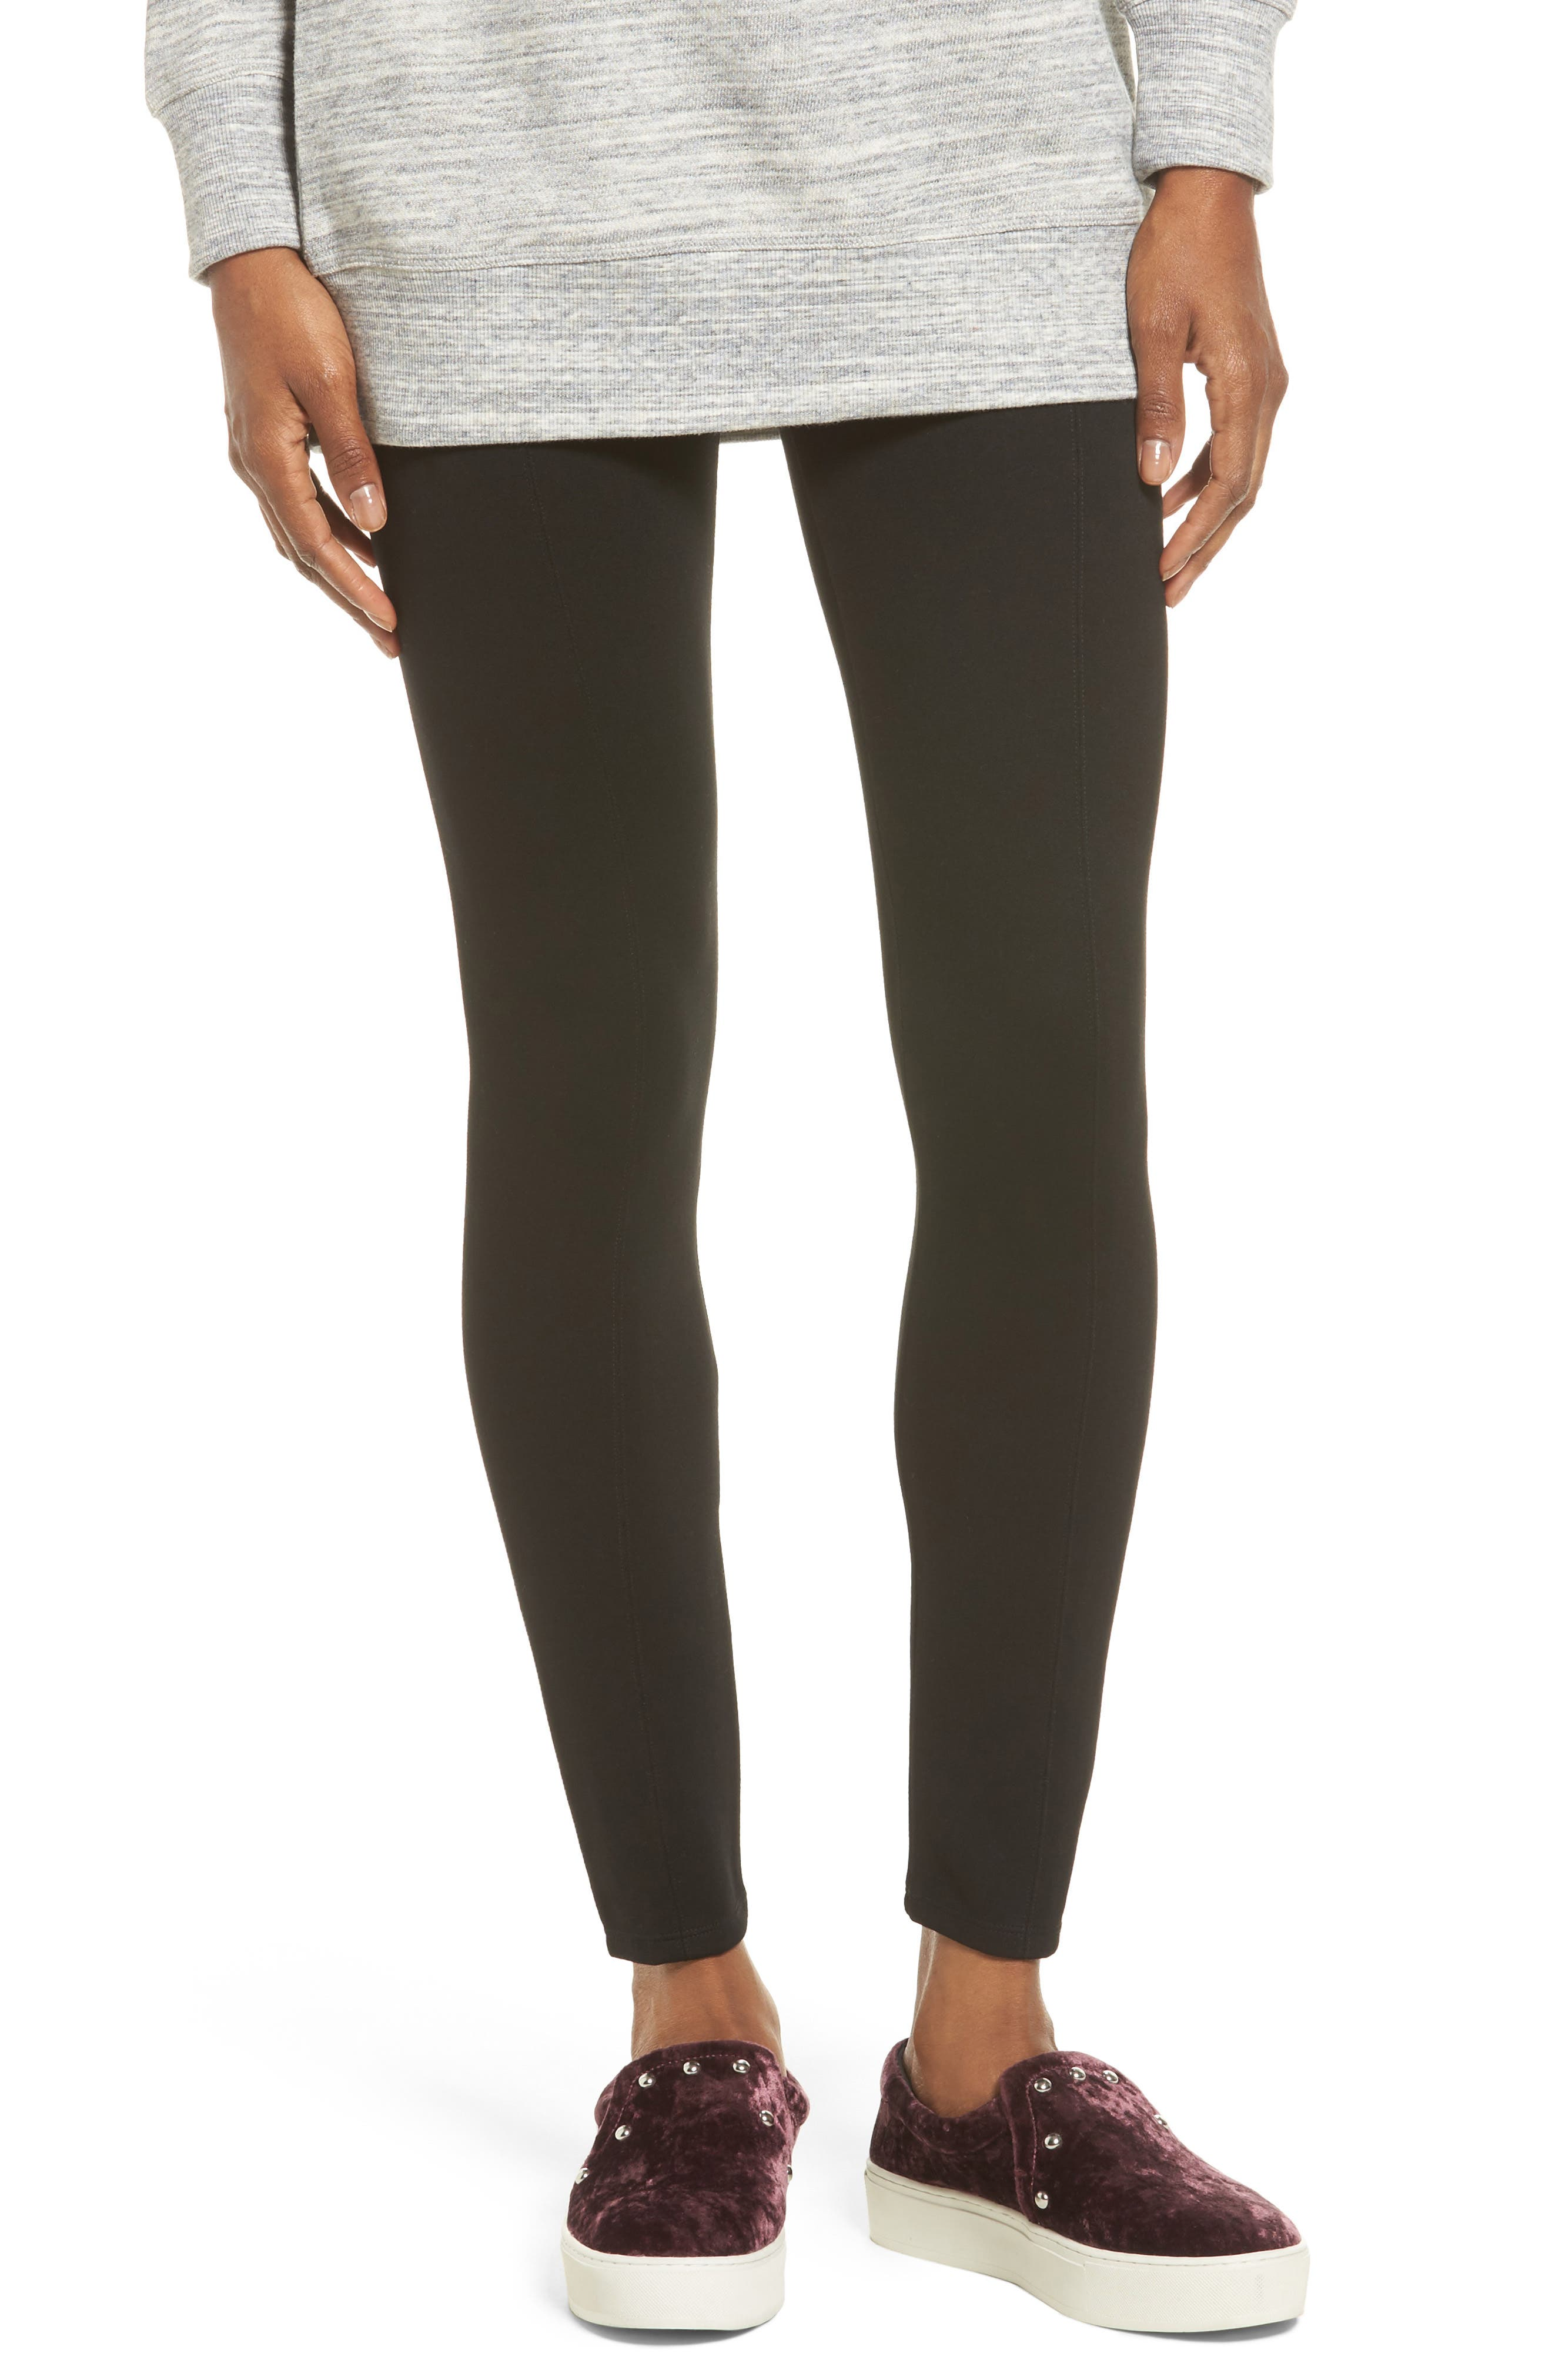 Alternate Image 1 Selected - Lyssé High Waist Seamed Leggings